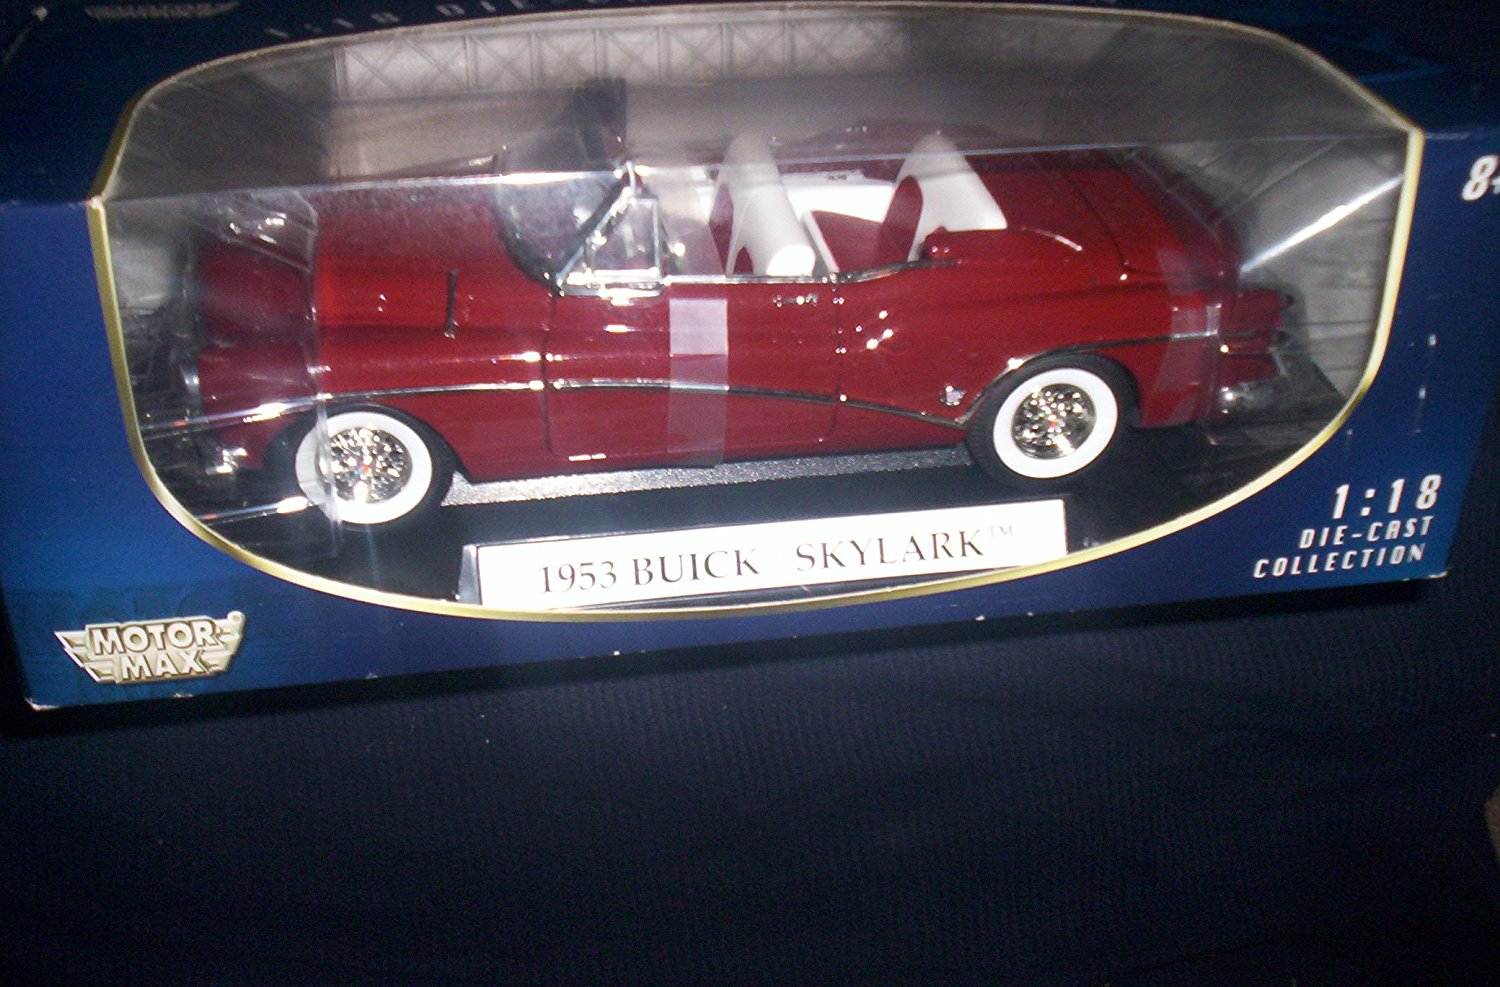 Get Quotations · BUICK SKYLARK 1953 DIE-CAST 1:18 COLLECTION